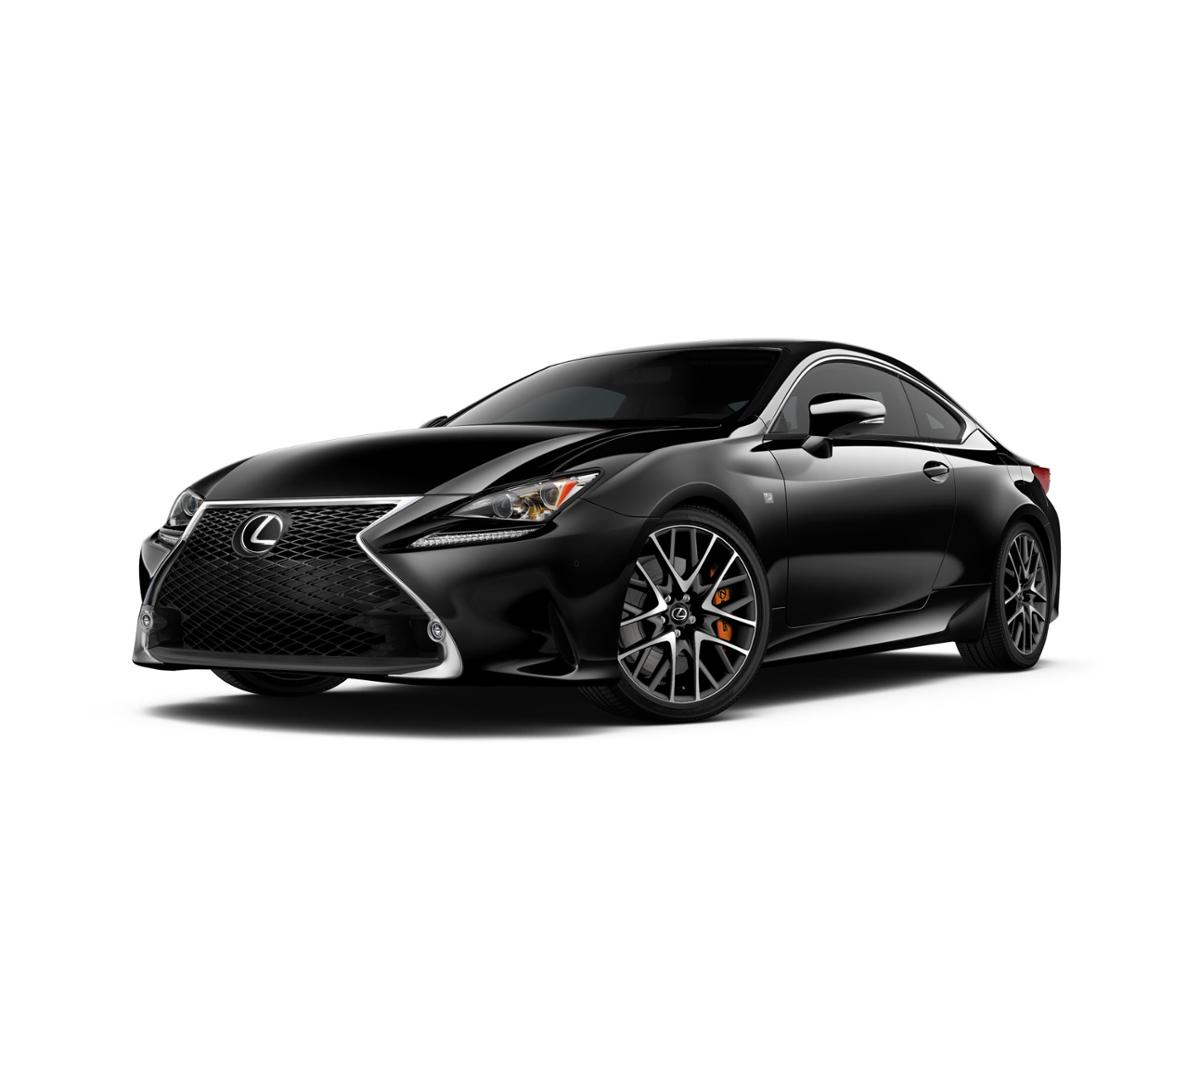 2017 lexus rc 350 houston tx westside lexus w6597. Black Bedroom Furniture Sets. Home Design Ideas